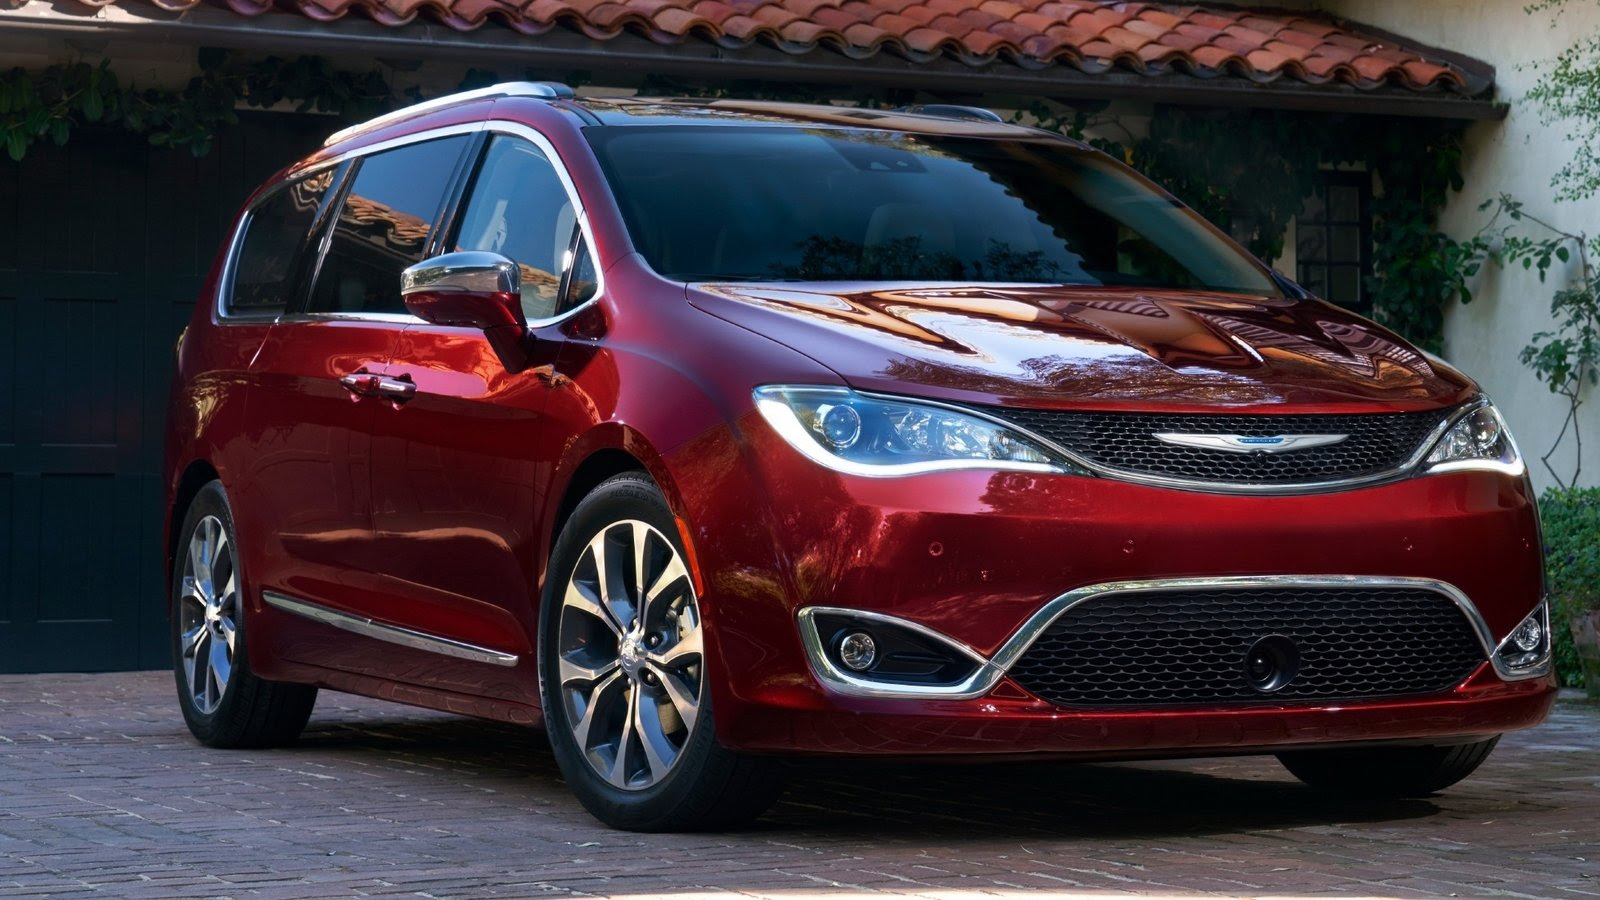 2019 chrysler pacifica new cars review. Black Bedroom Furniture Sets. Home Design Ideas